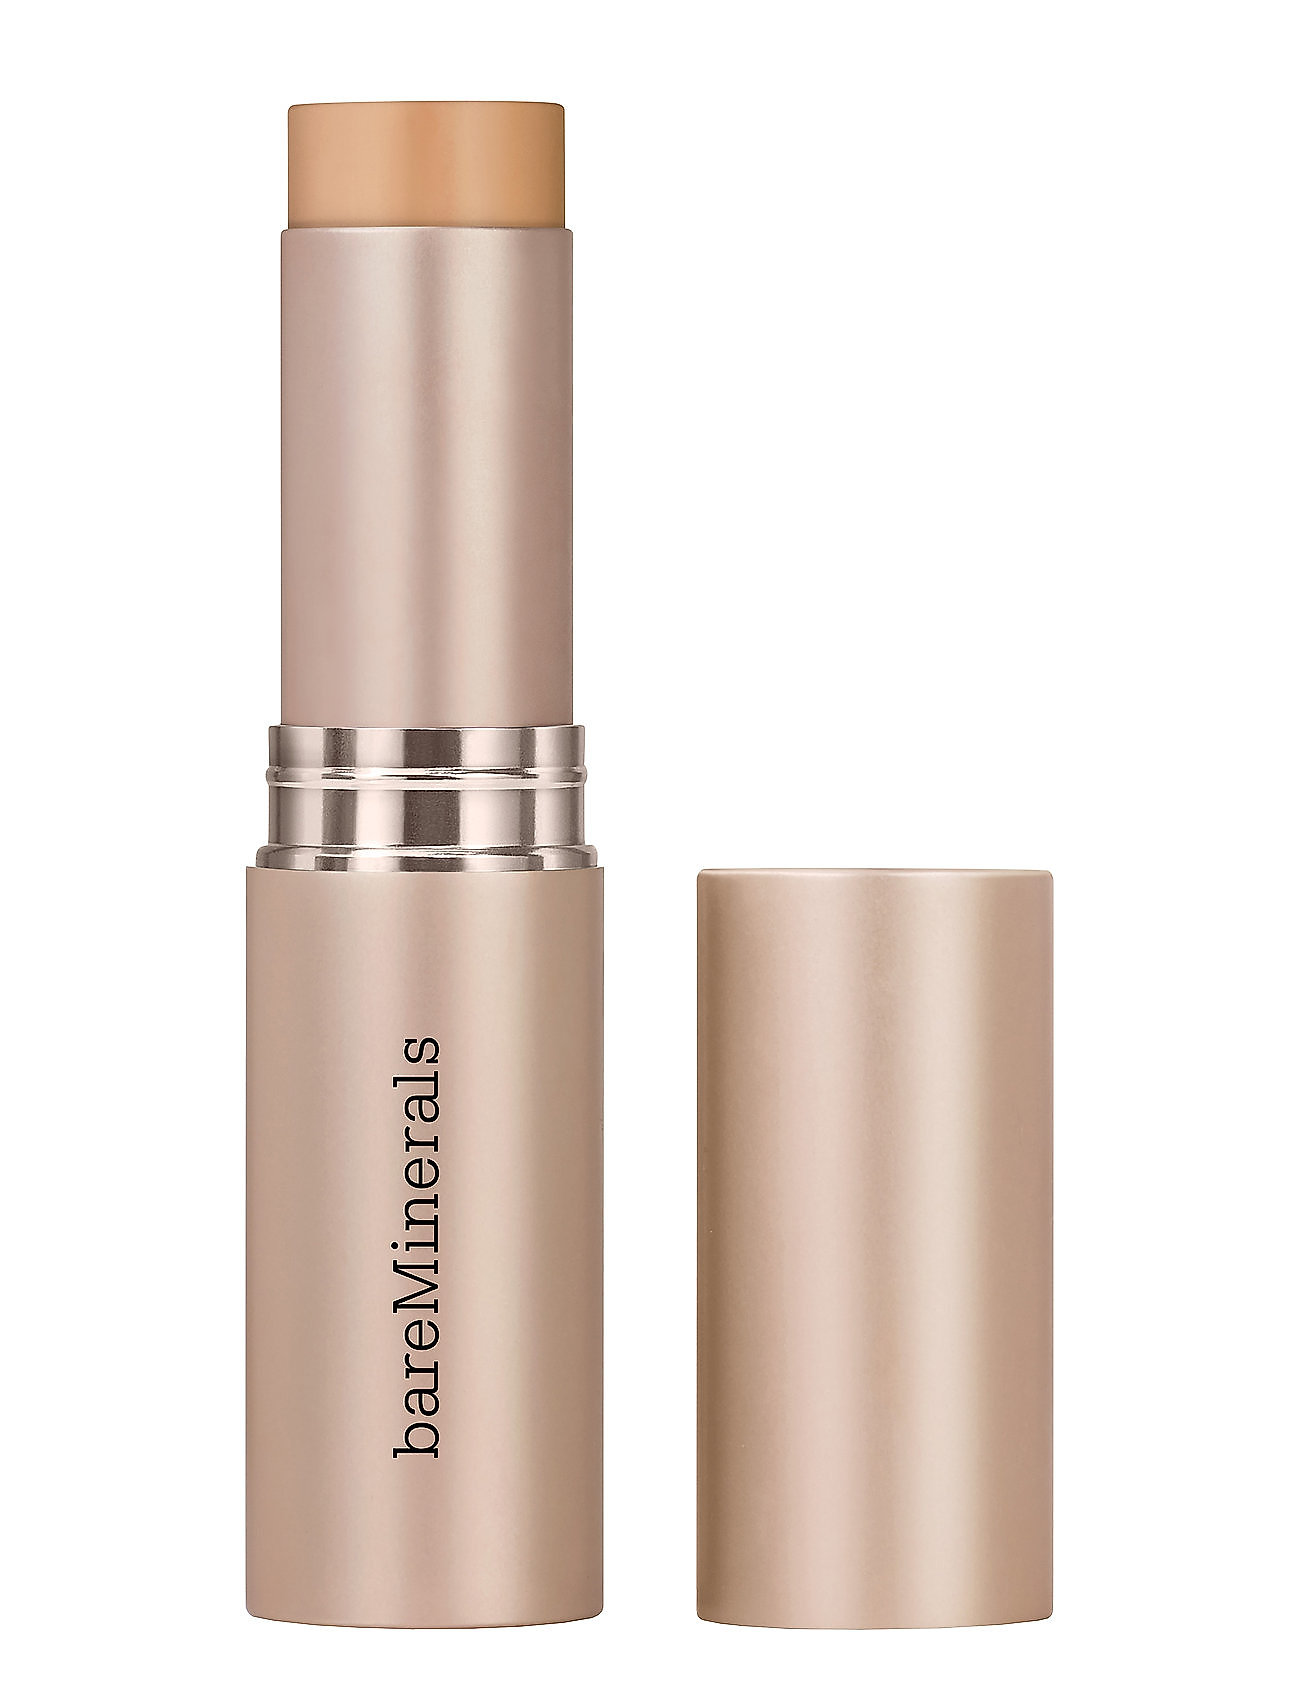 Image of Rescue Hydrating Foundation Stick Spf 25 Wheat 4.5 Foundation Makeup BareMinerals (3250586893)